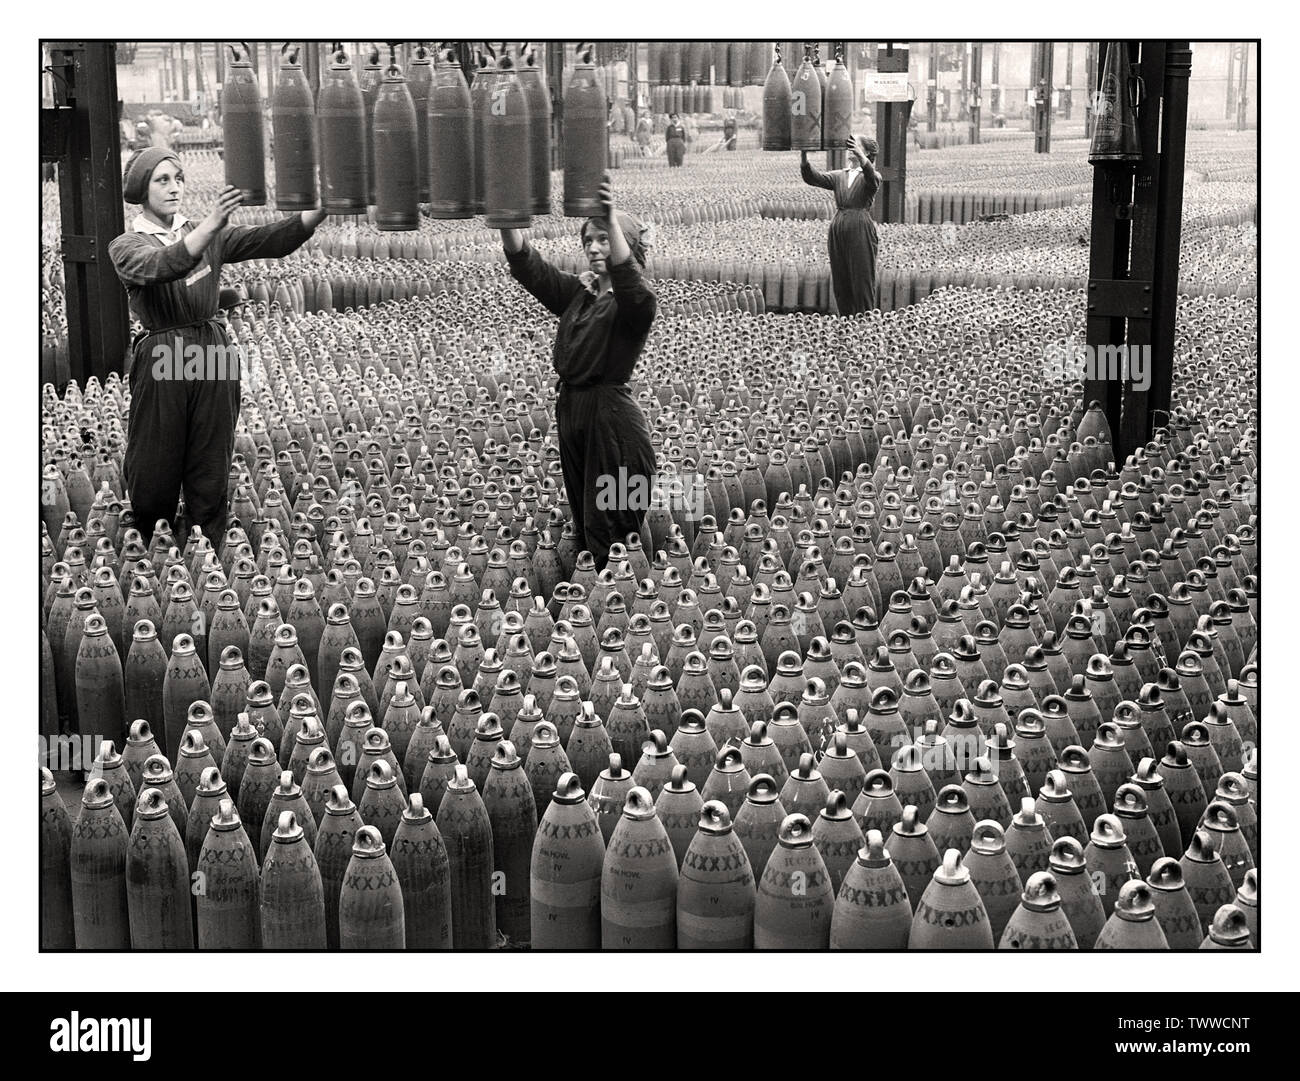 Vintage 1915 World War 1 Information Propaganda image of the Chilwell munitions filling factory, Britain WW1 More than 19 million shells were filled with explosives here by 10,000 workers between 1915-1918, during World War 1. The factory filled 50% of all British shells during the Great First World War. - Stock Image